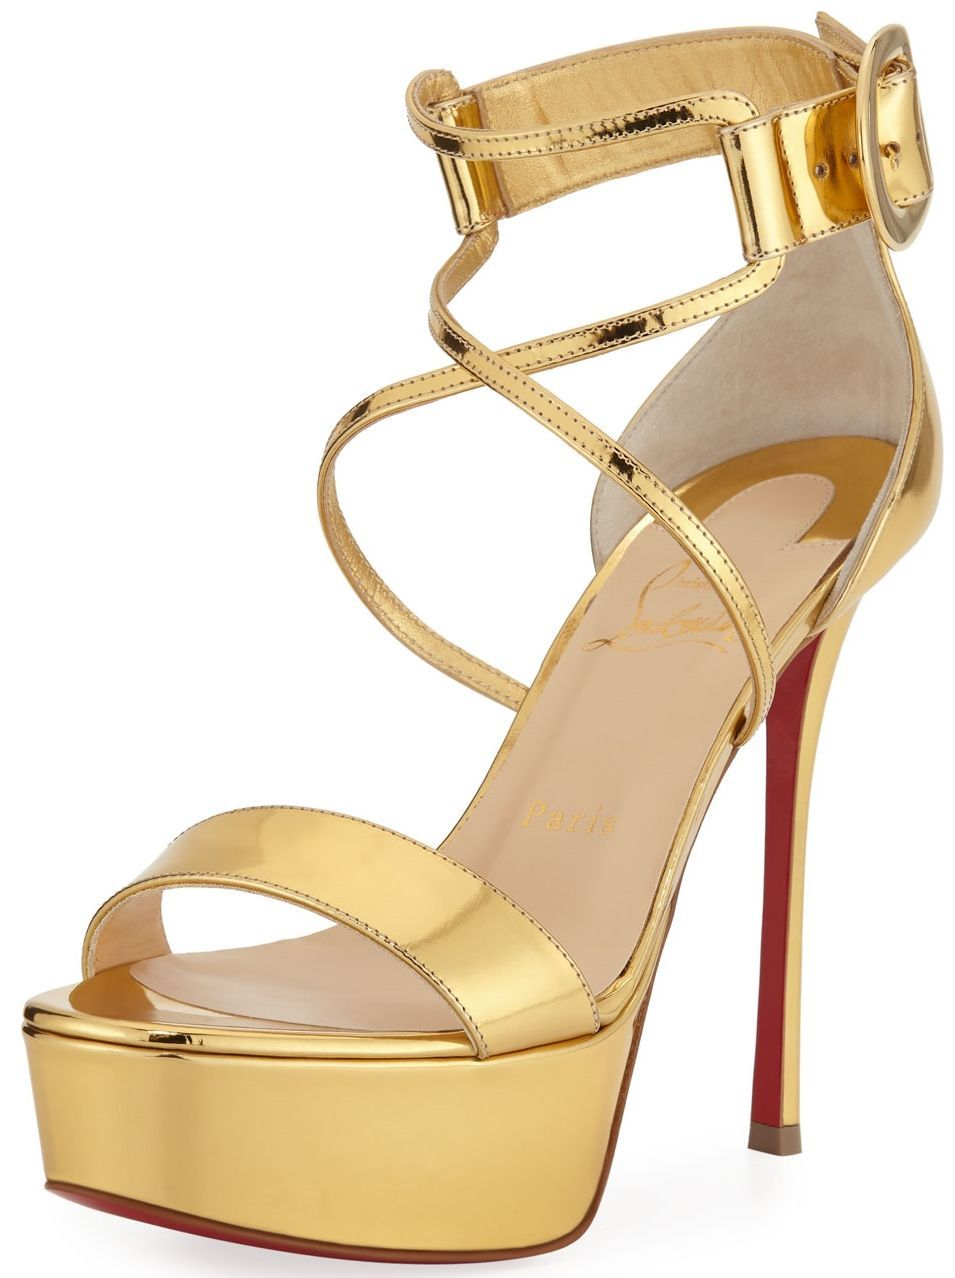 008f334034a Christian Louboutin shiny metallic leather sandals